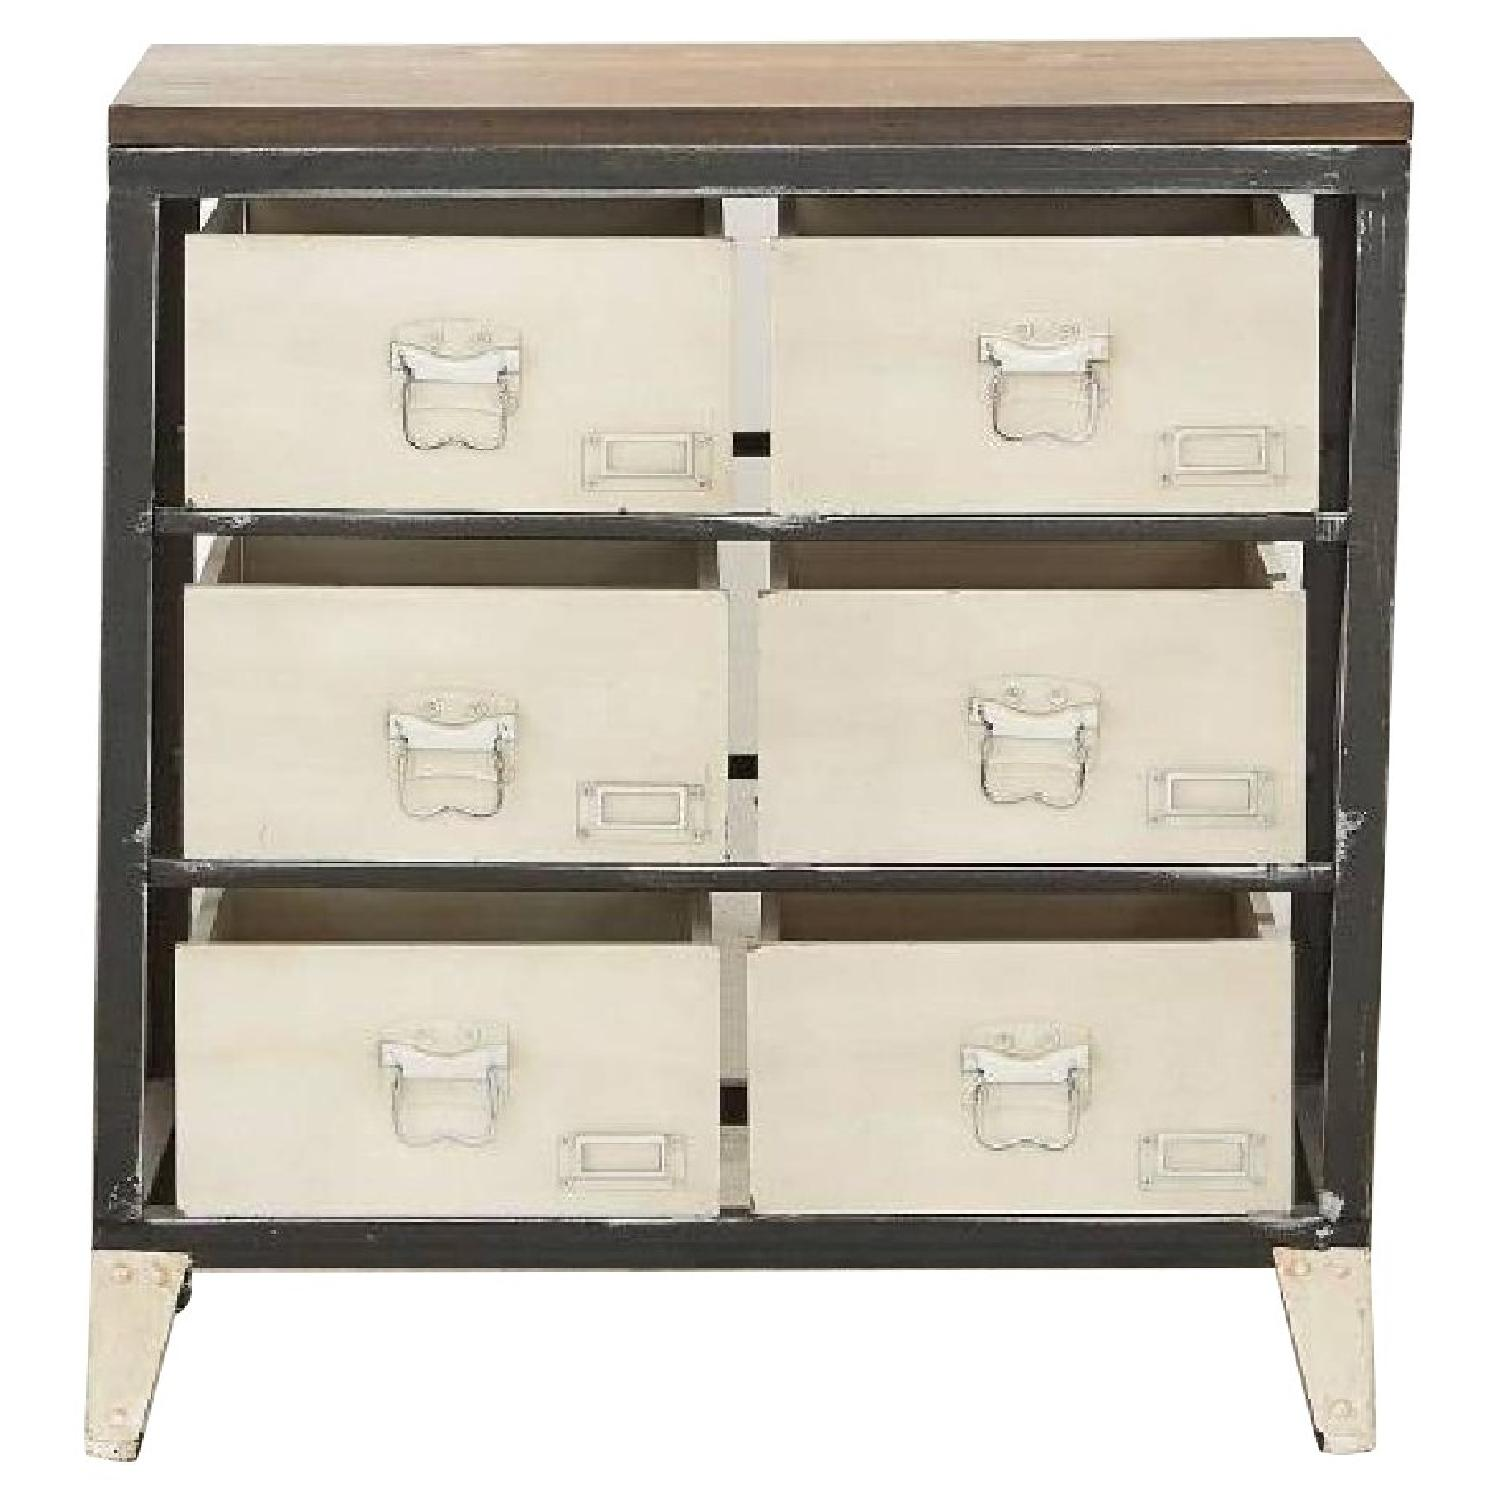 Urban Outfitters Mini Industrial Storage Chests - image-0